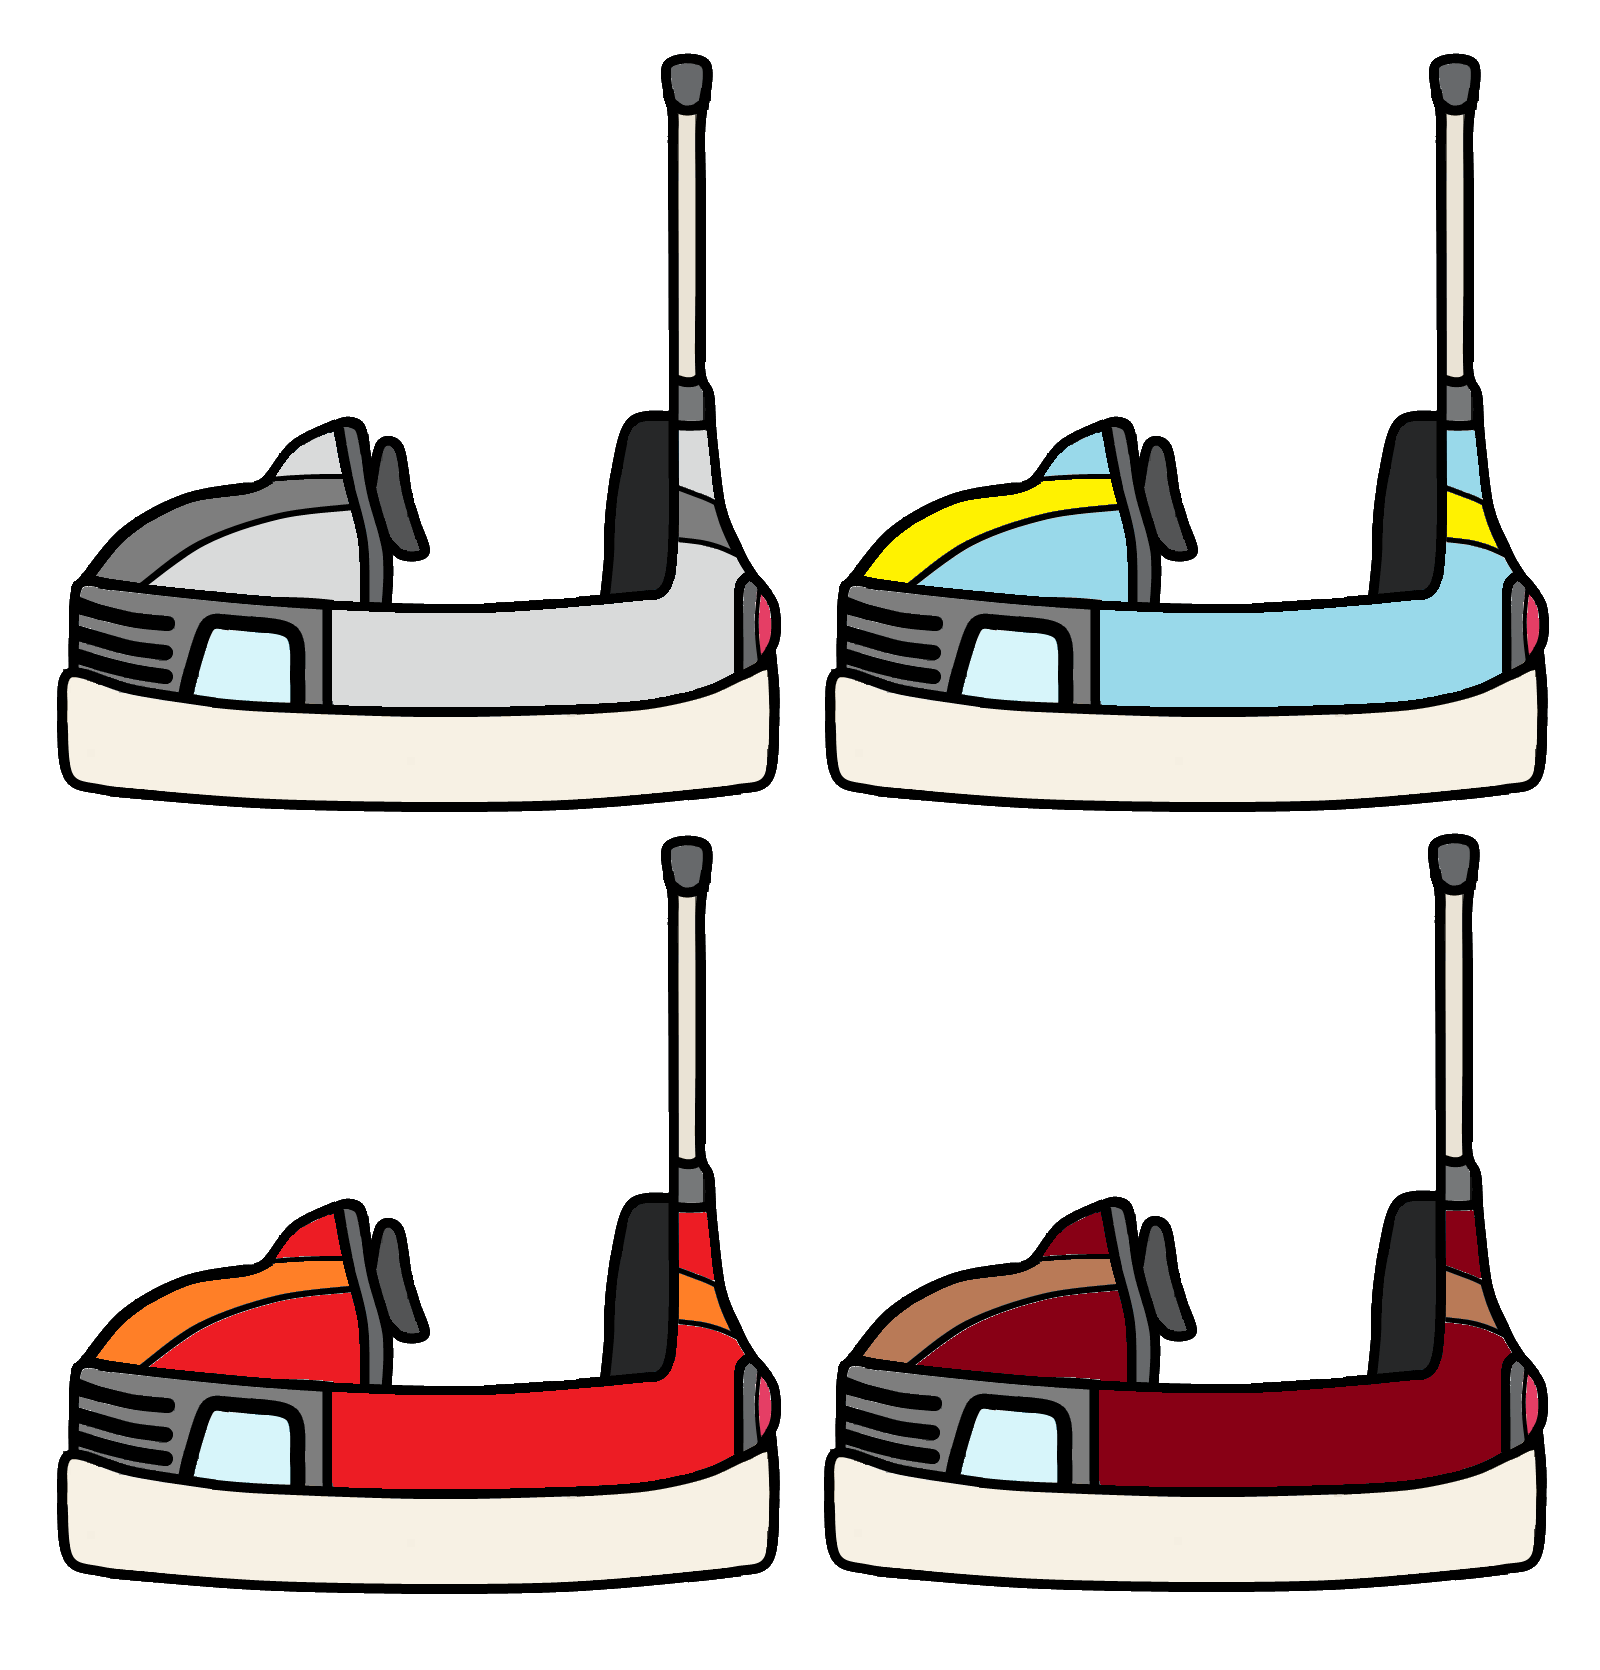 Bumper car clipart picture free Walfas Custom Props - Bumper cars by grayfox5000 on DeviantArt picture free